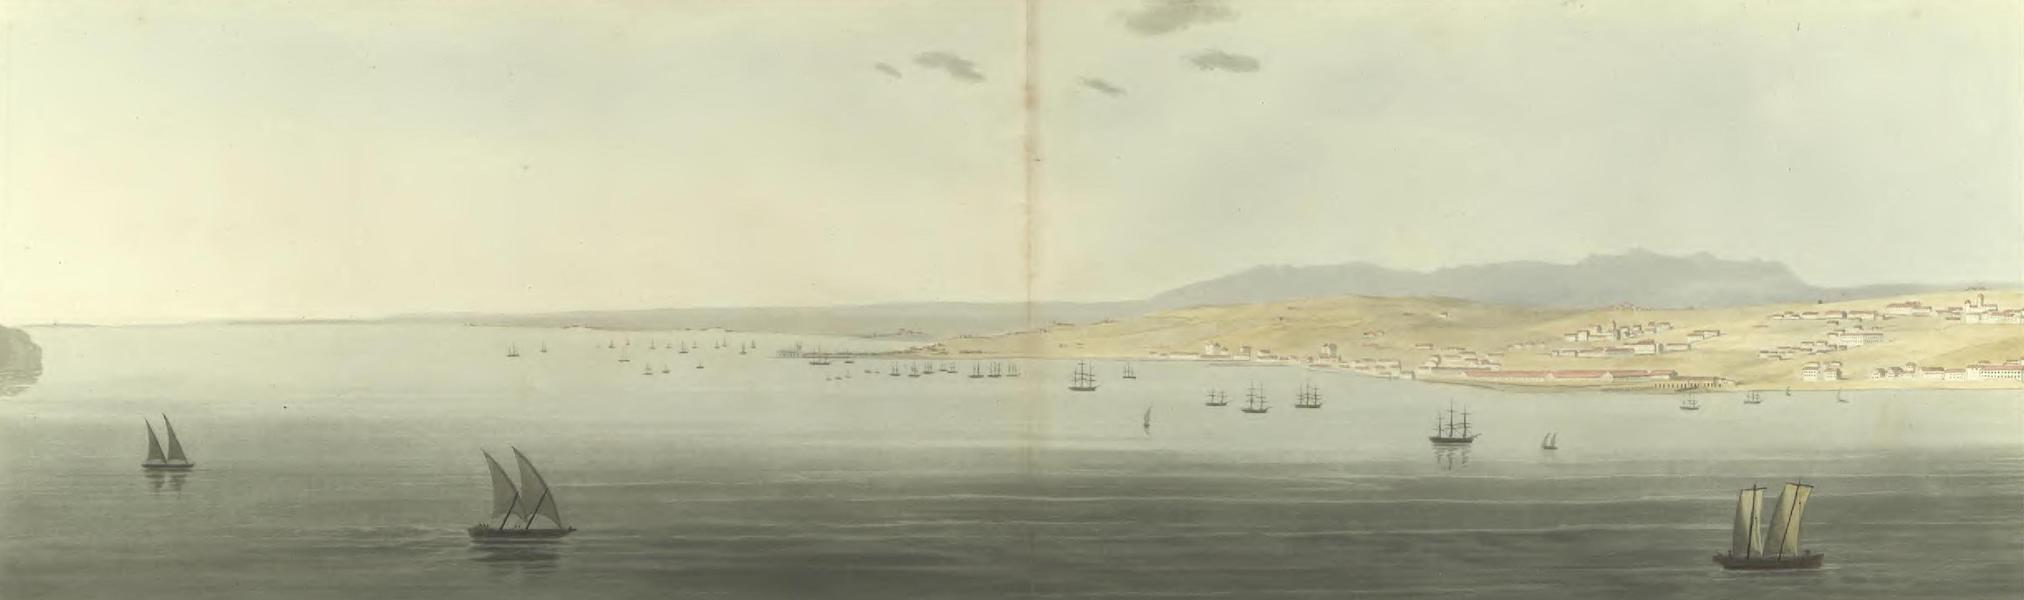 Historical, Military, and Picturesque Observations on Portugal Vol. 2 - View up the Tejo  (1818)